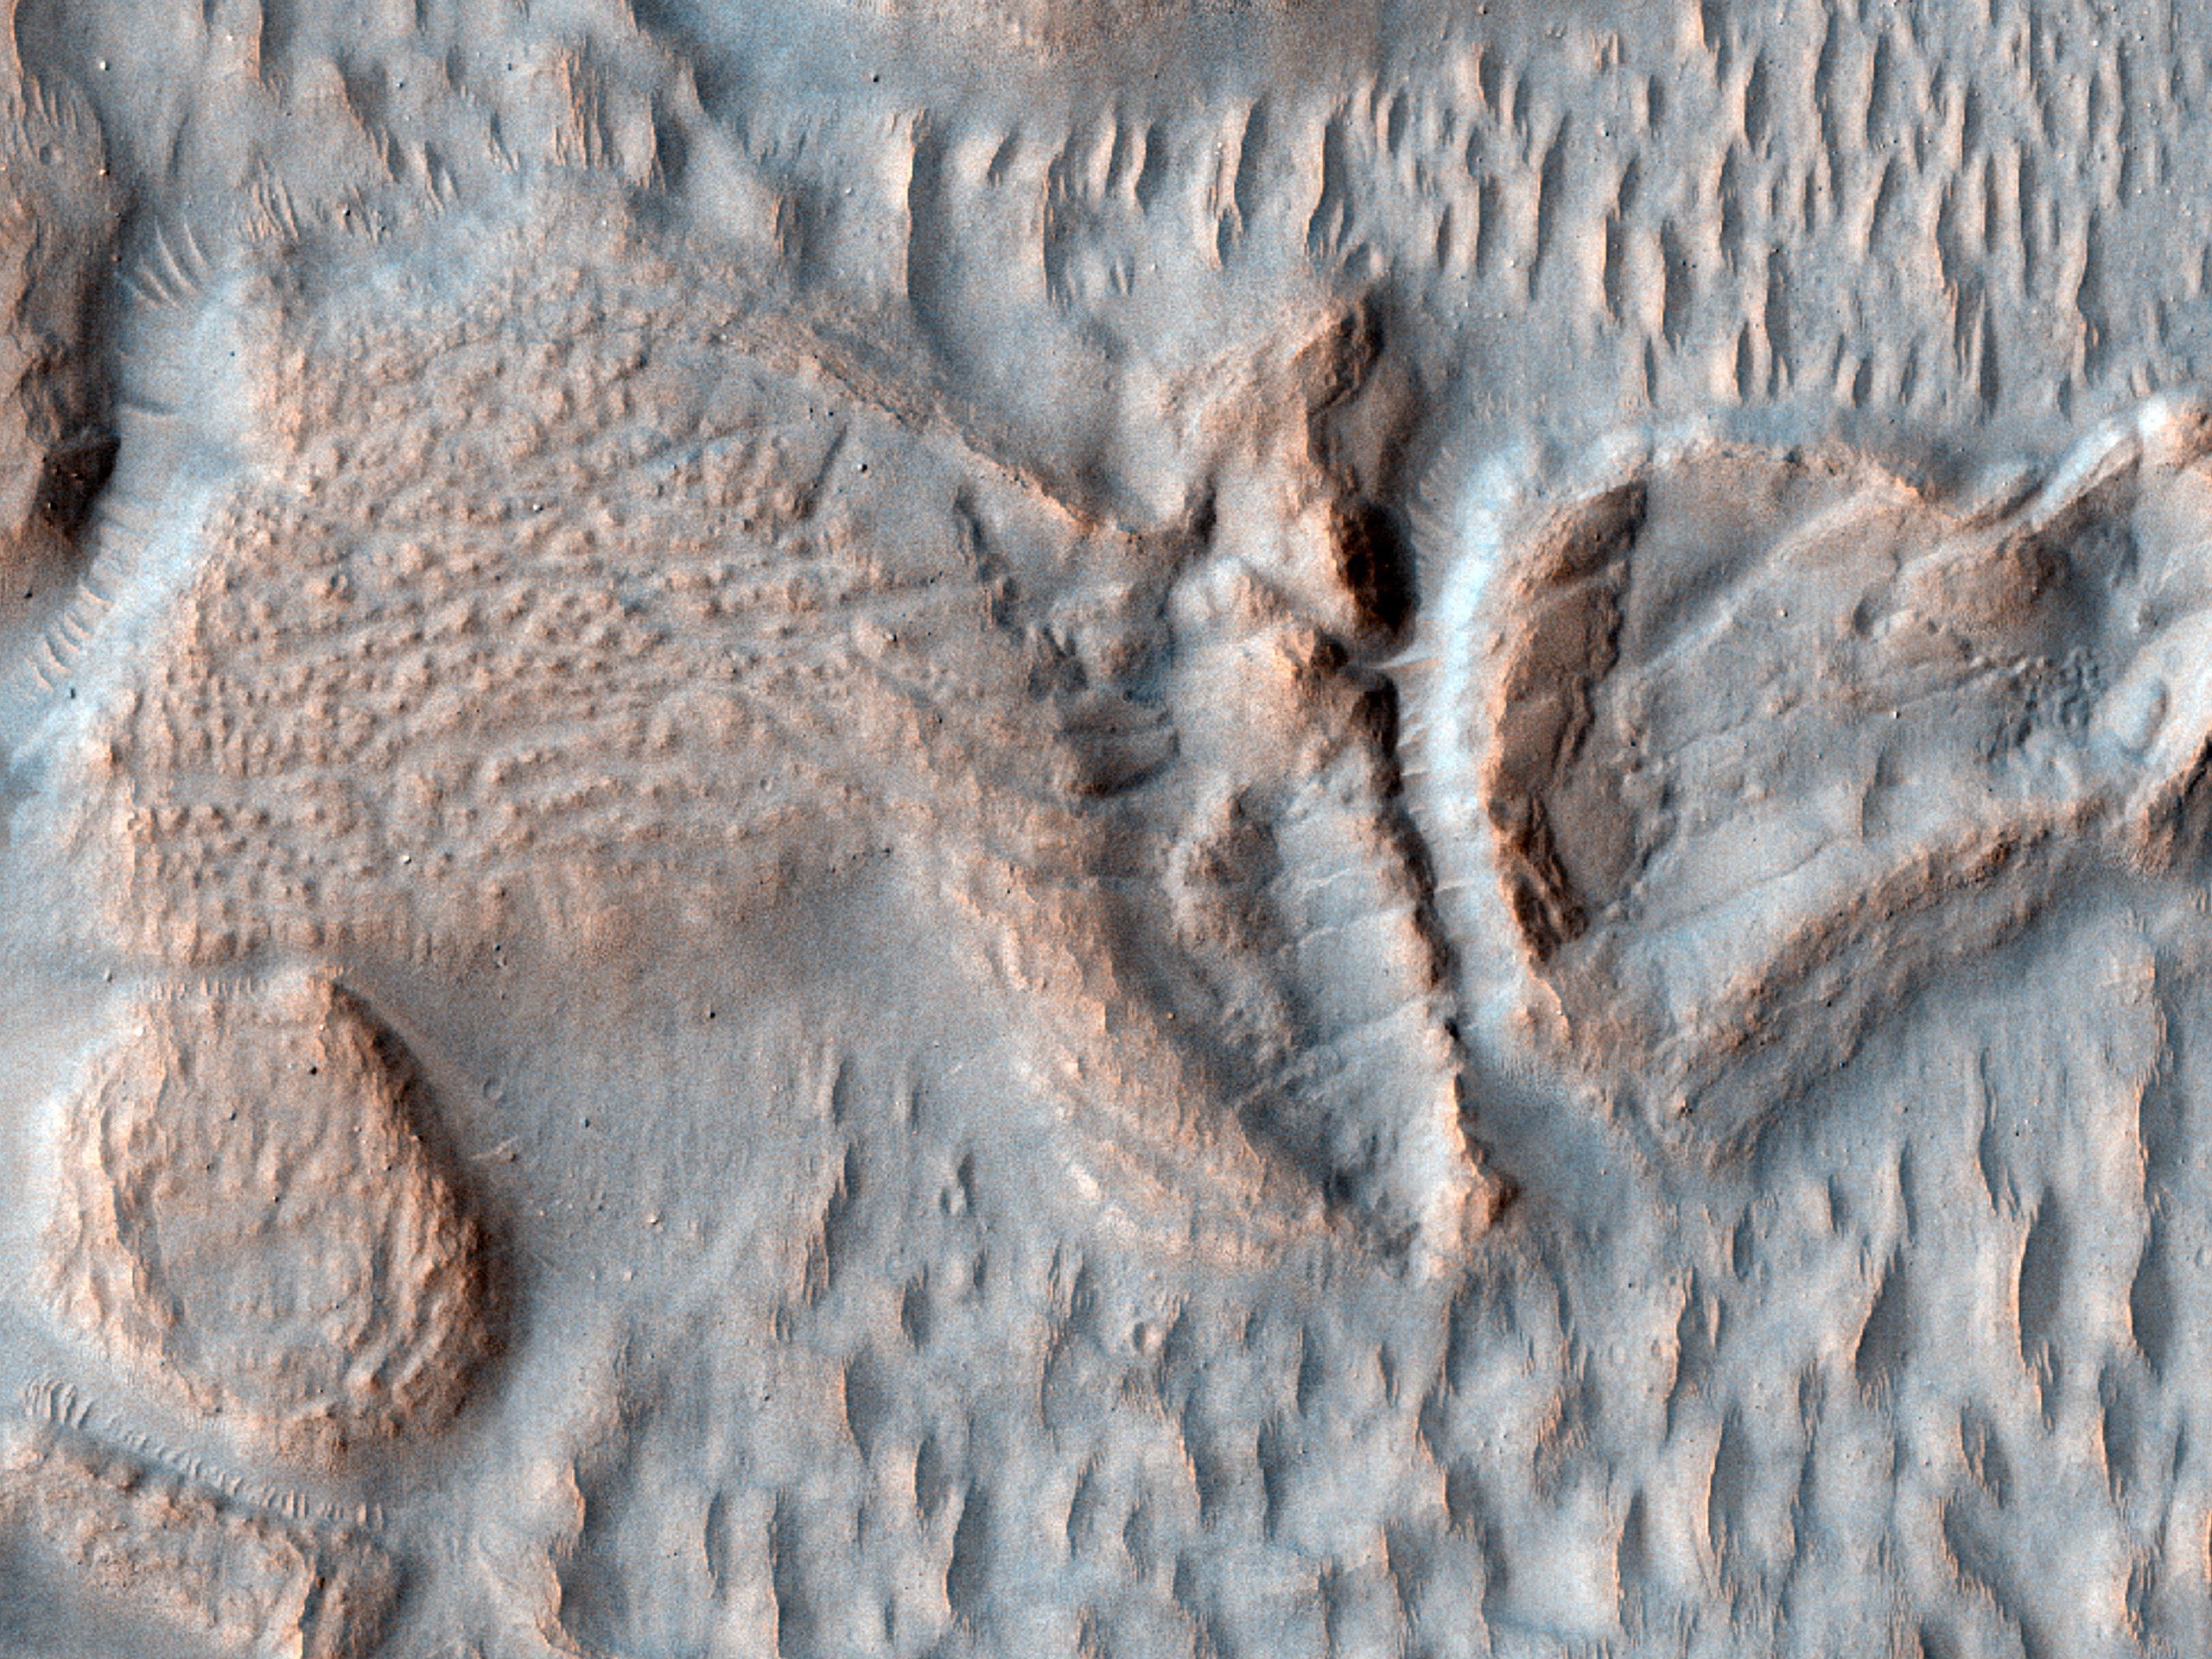 Outflow Feature Near Mafra Crater